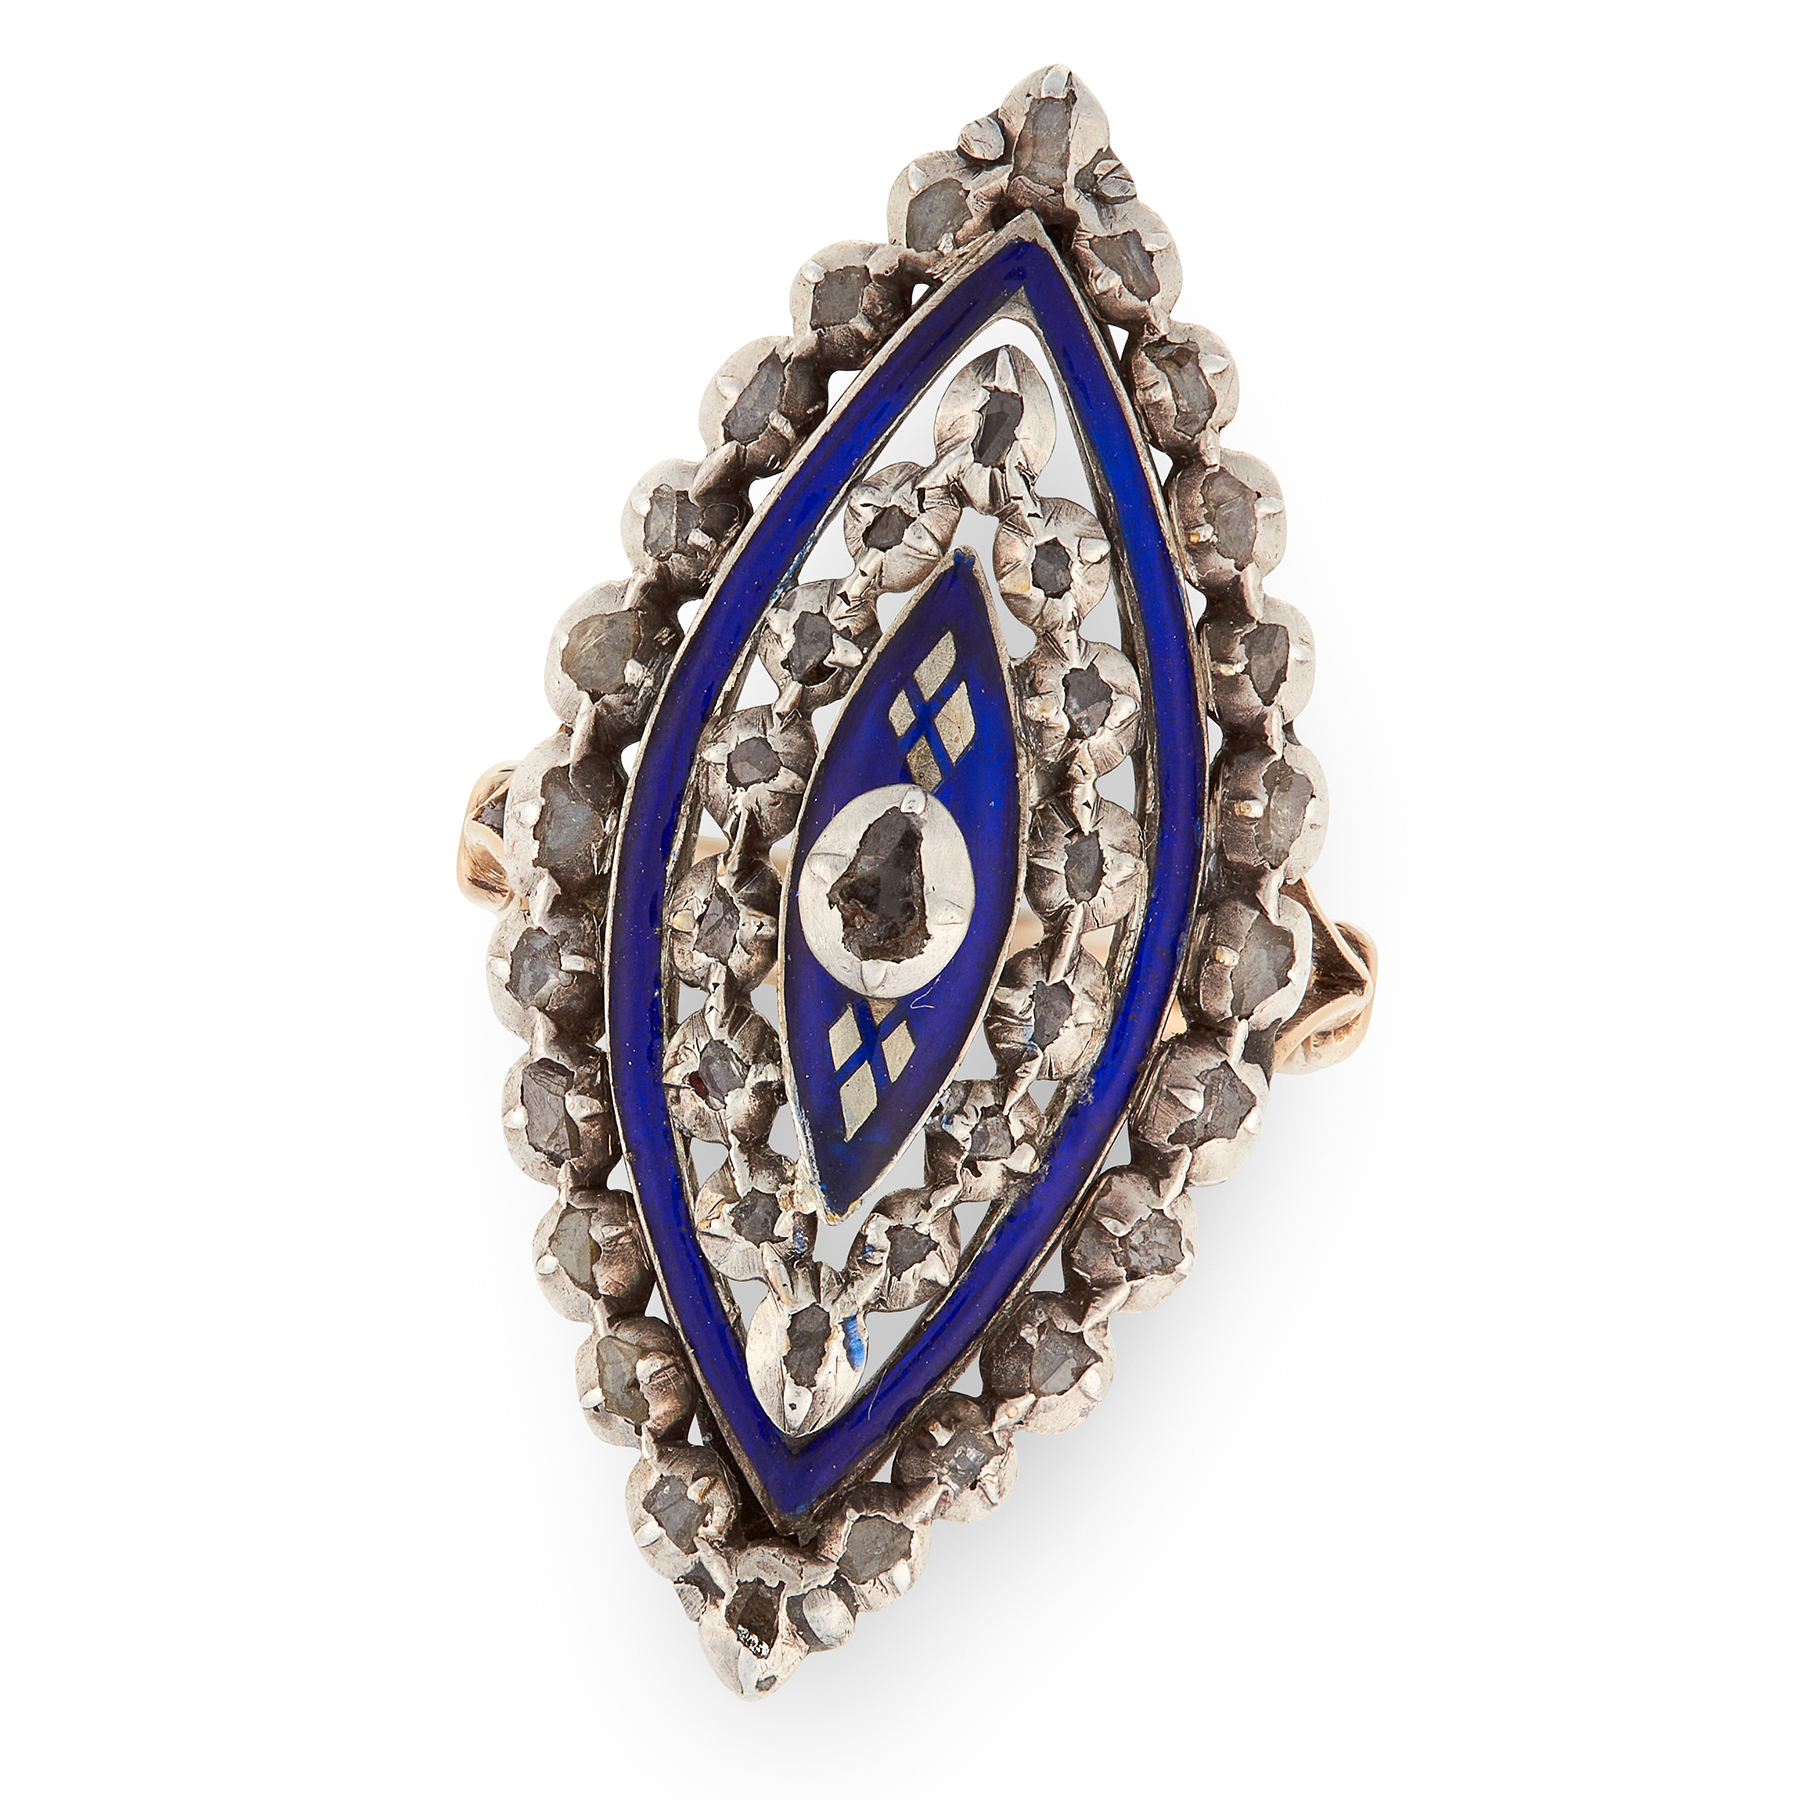 AN ANTIQUE ENAMEL AND DIAMOND BAGUE DE FIRMAMENT RING, 19TH CENTURY in yellow gold and silver, the